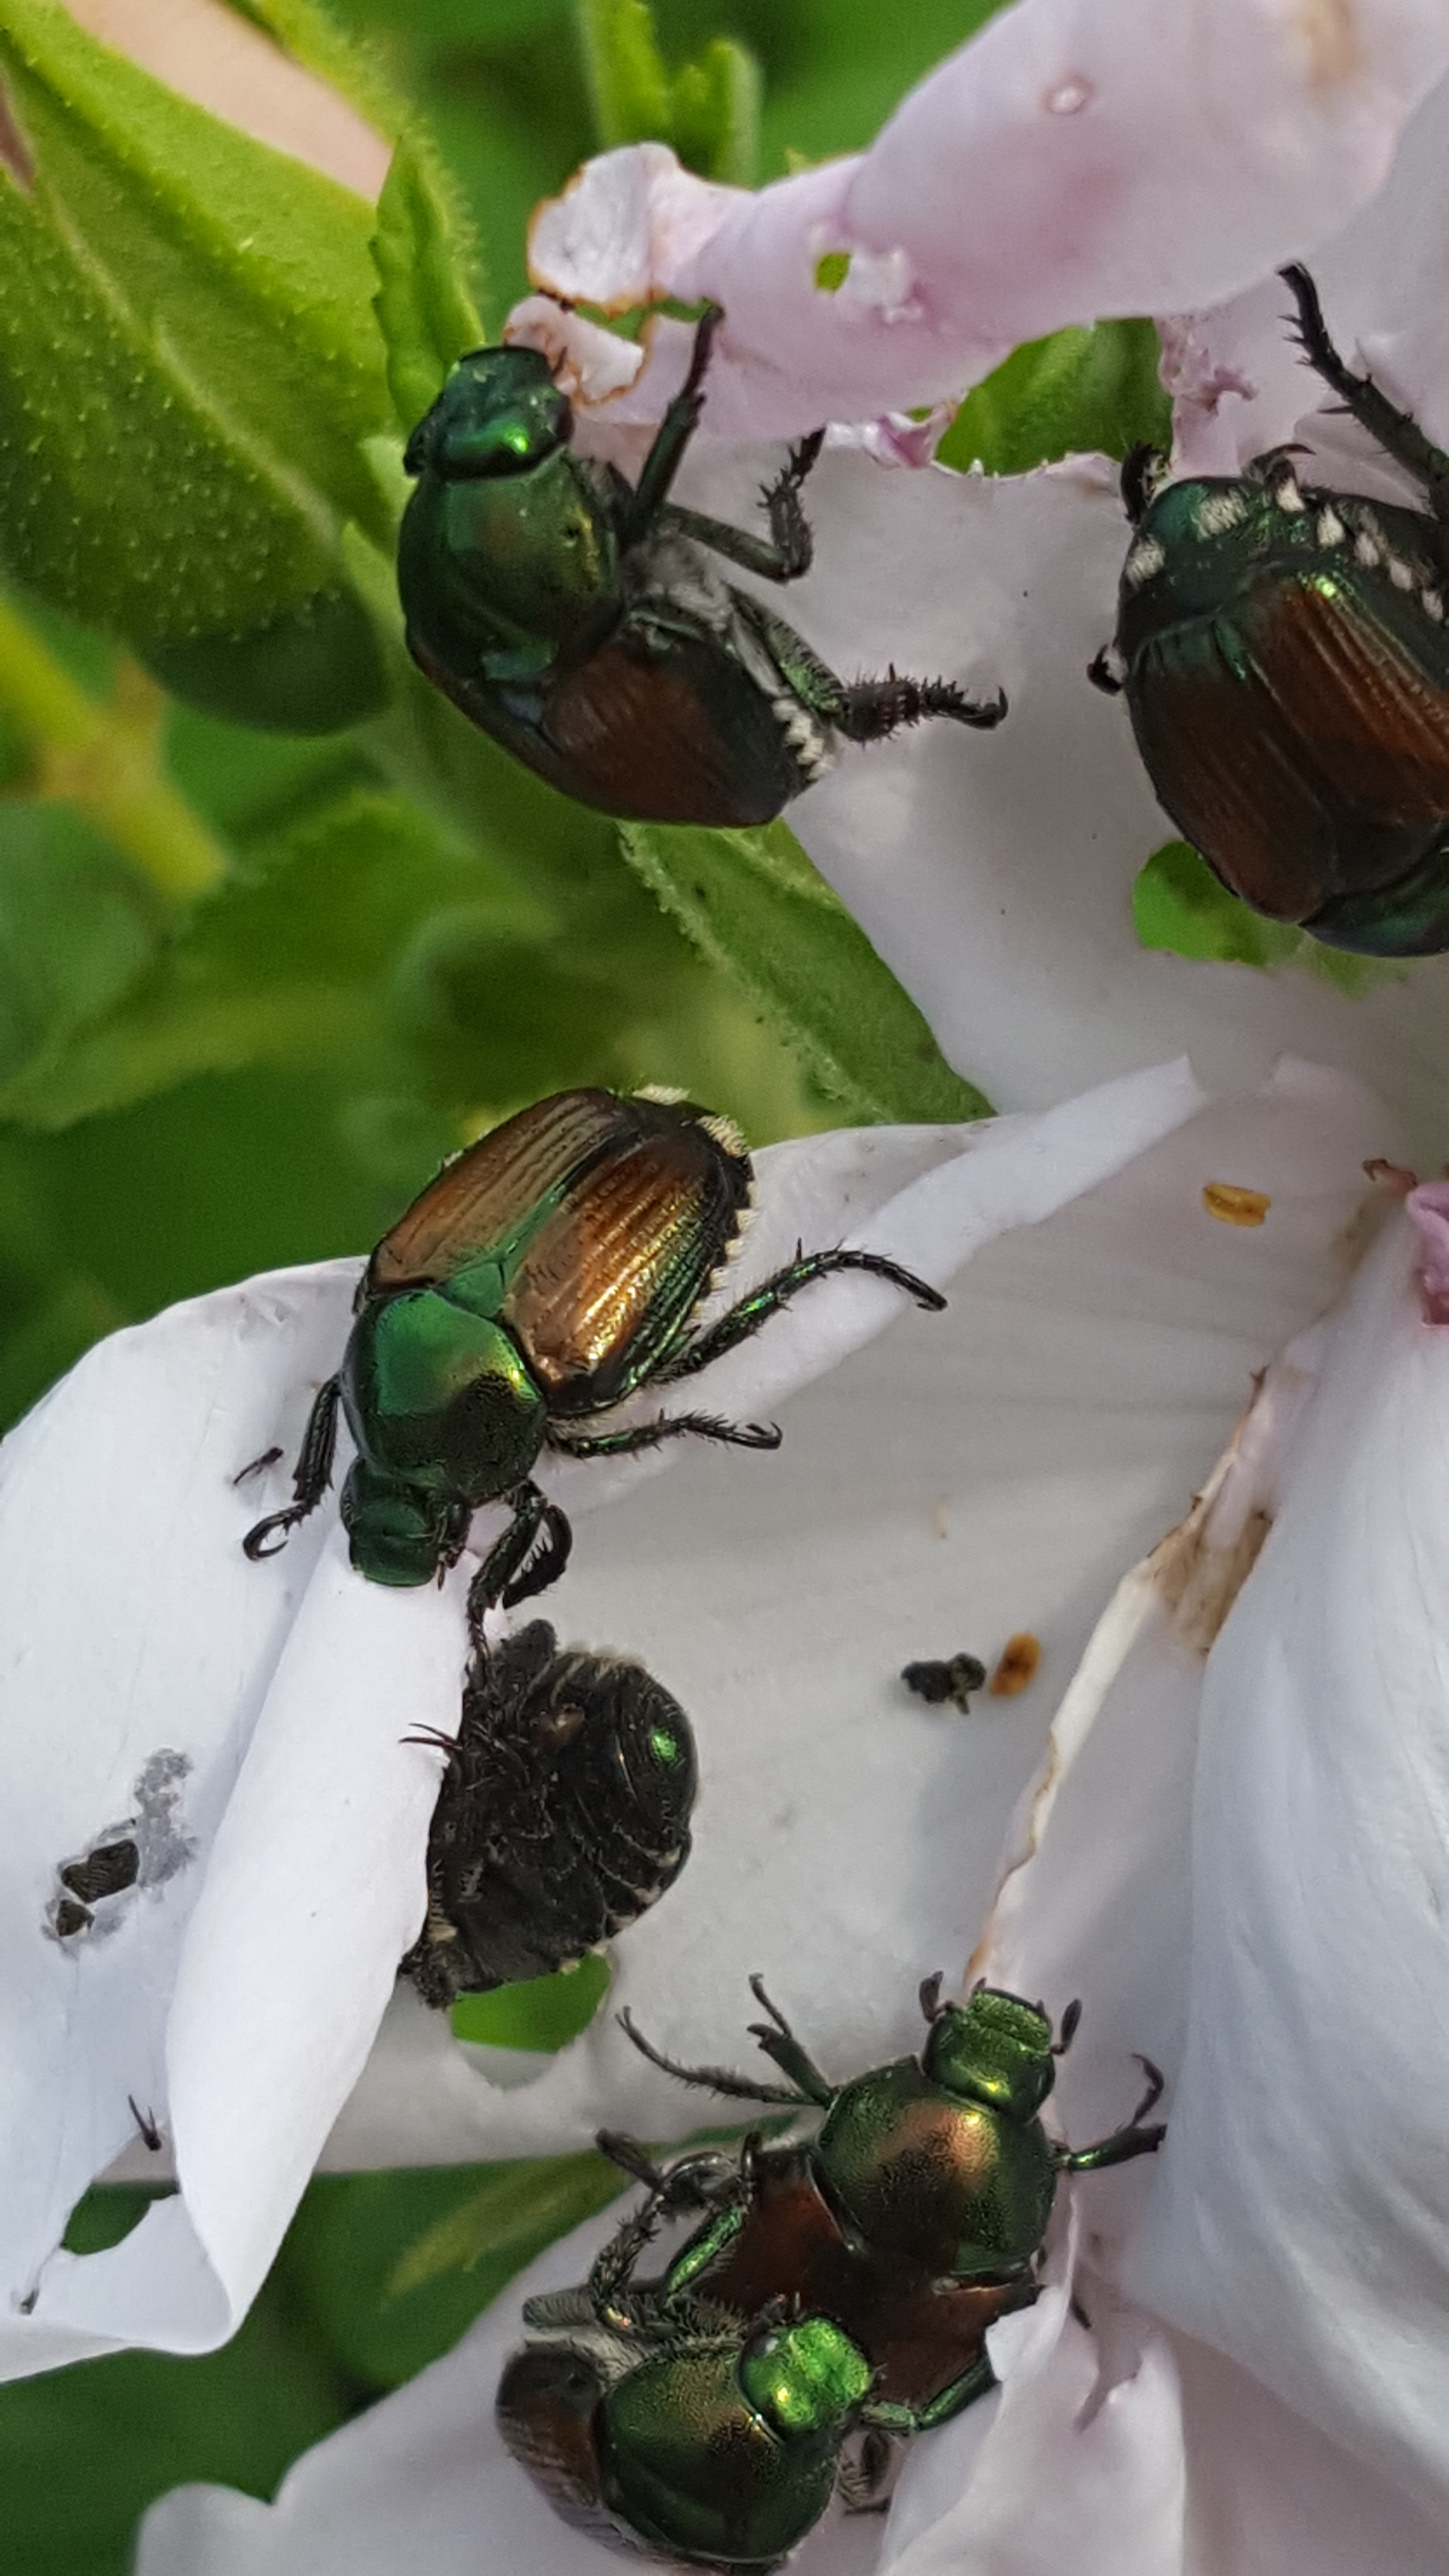 Japanese Beetles Feasting on Rose Flower